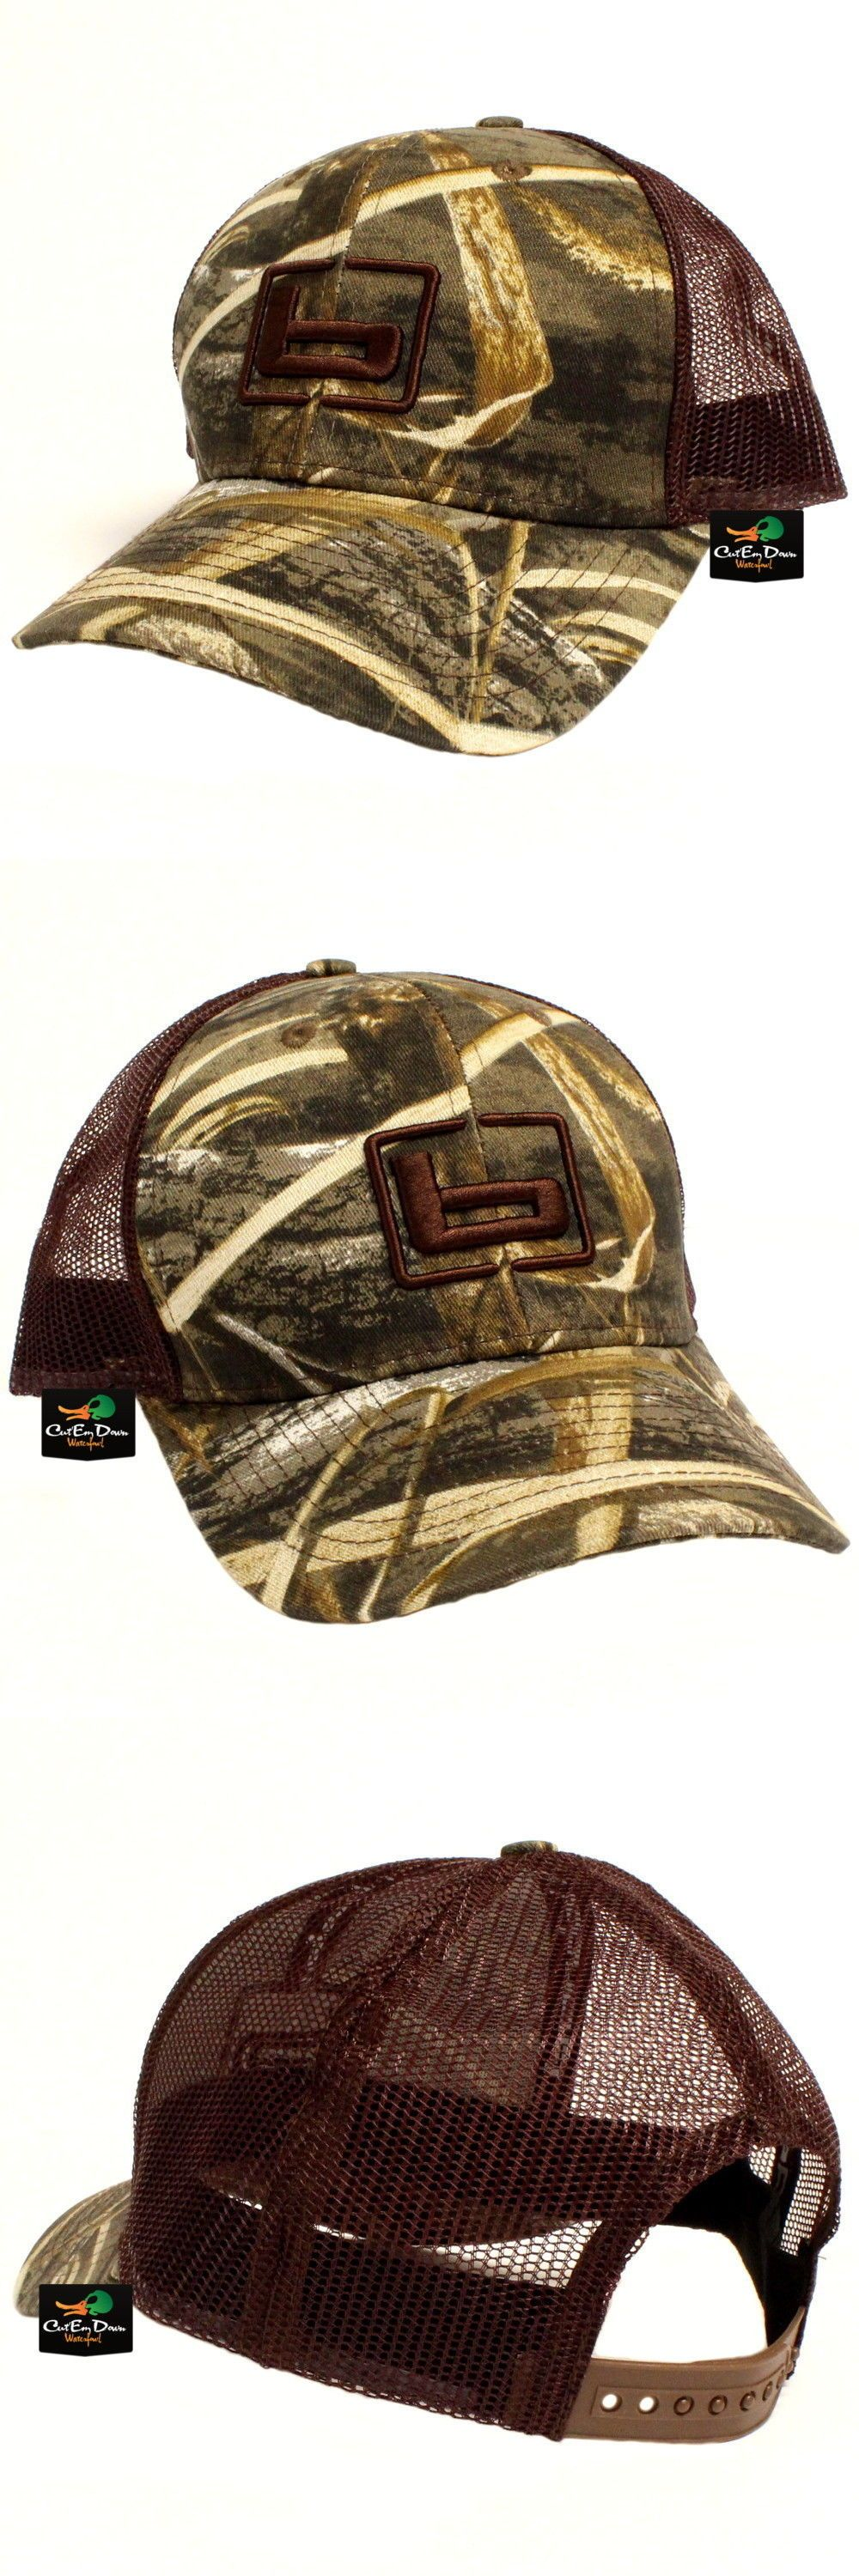 Clothing Shoes and Accessories 36239  New Banded Gear Trucker Cap Hat Max-5  Camo Brown Mesh W B Logo Adjustable -  BUY IT NOW ONLY   18.9 on  eBay   clothing ... b74c3612838e